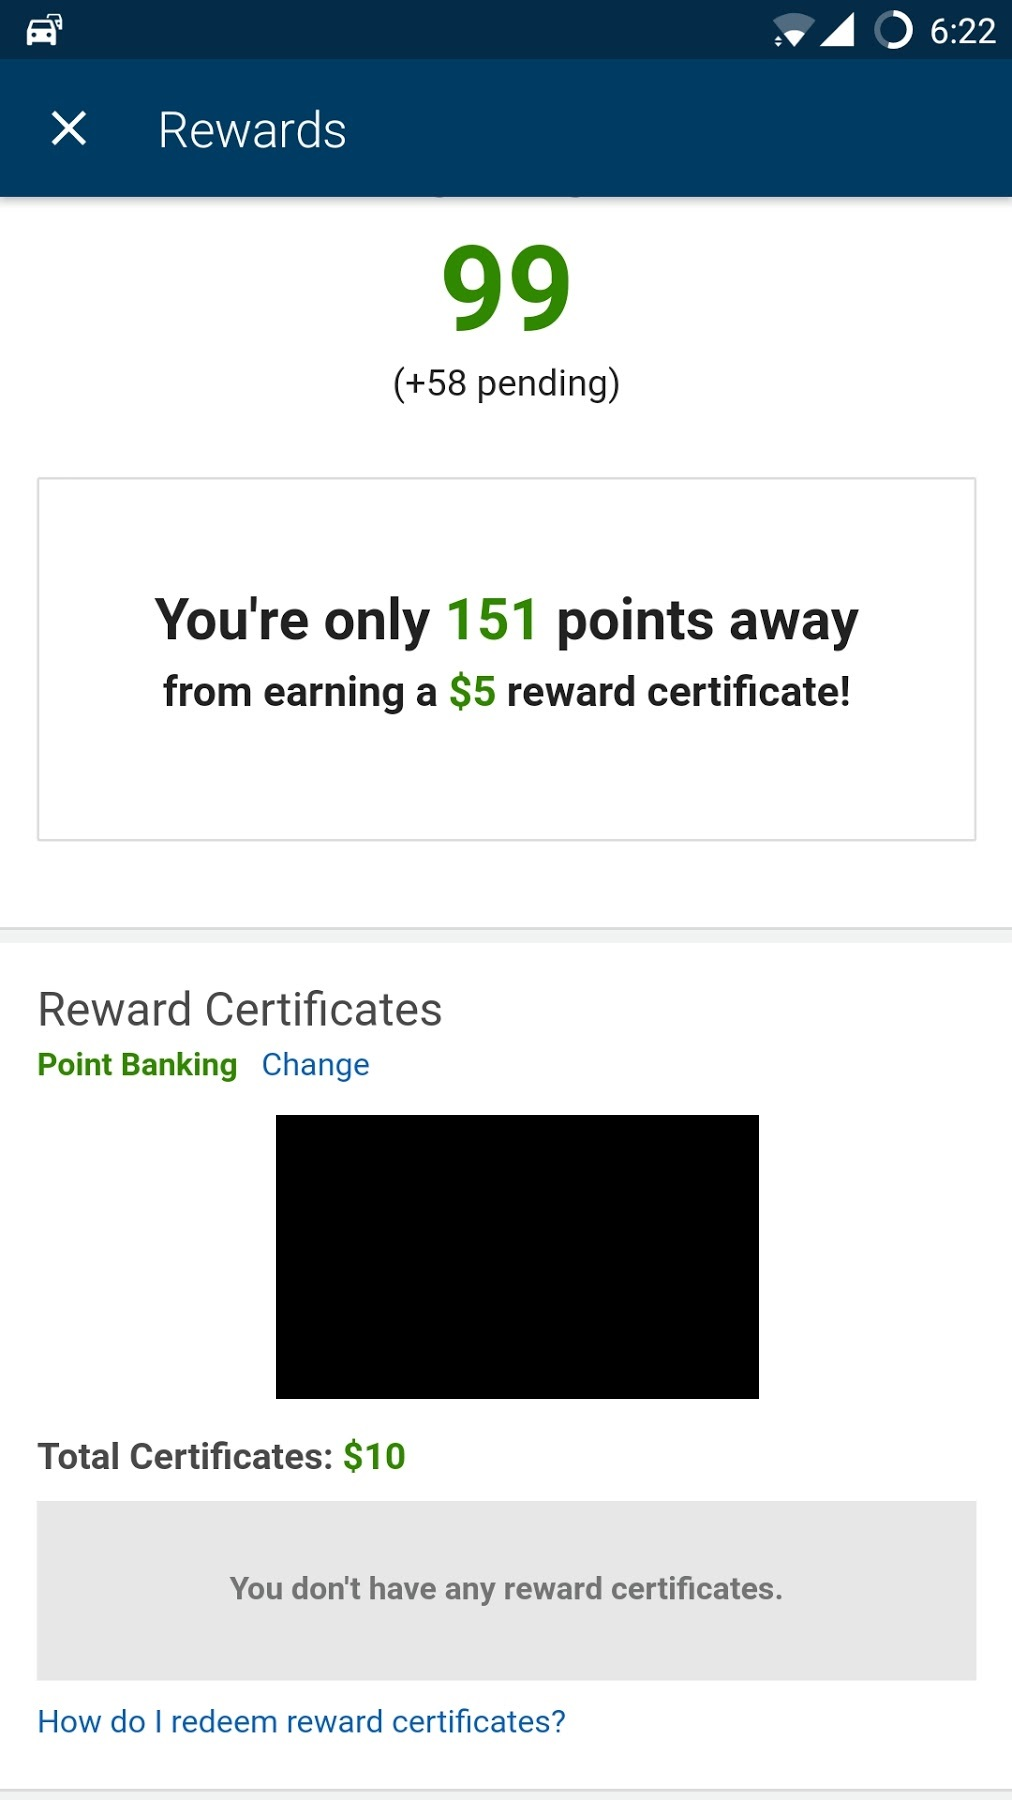 Missing Reward Certificates Best Buy Support